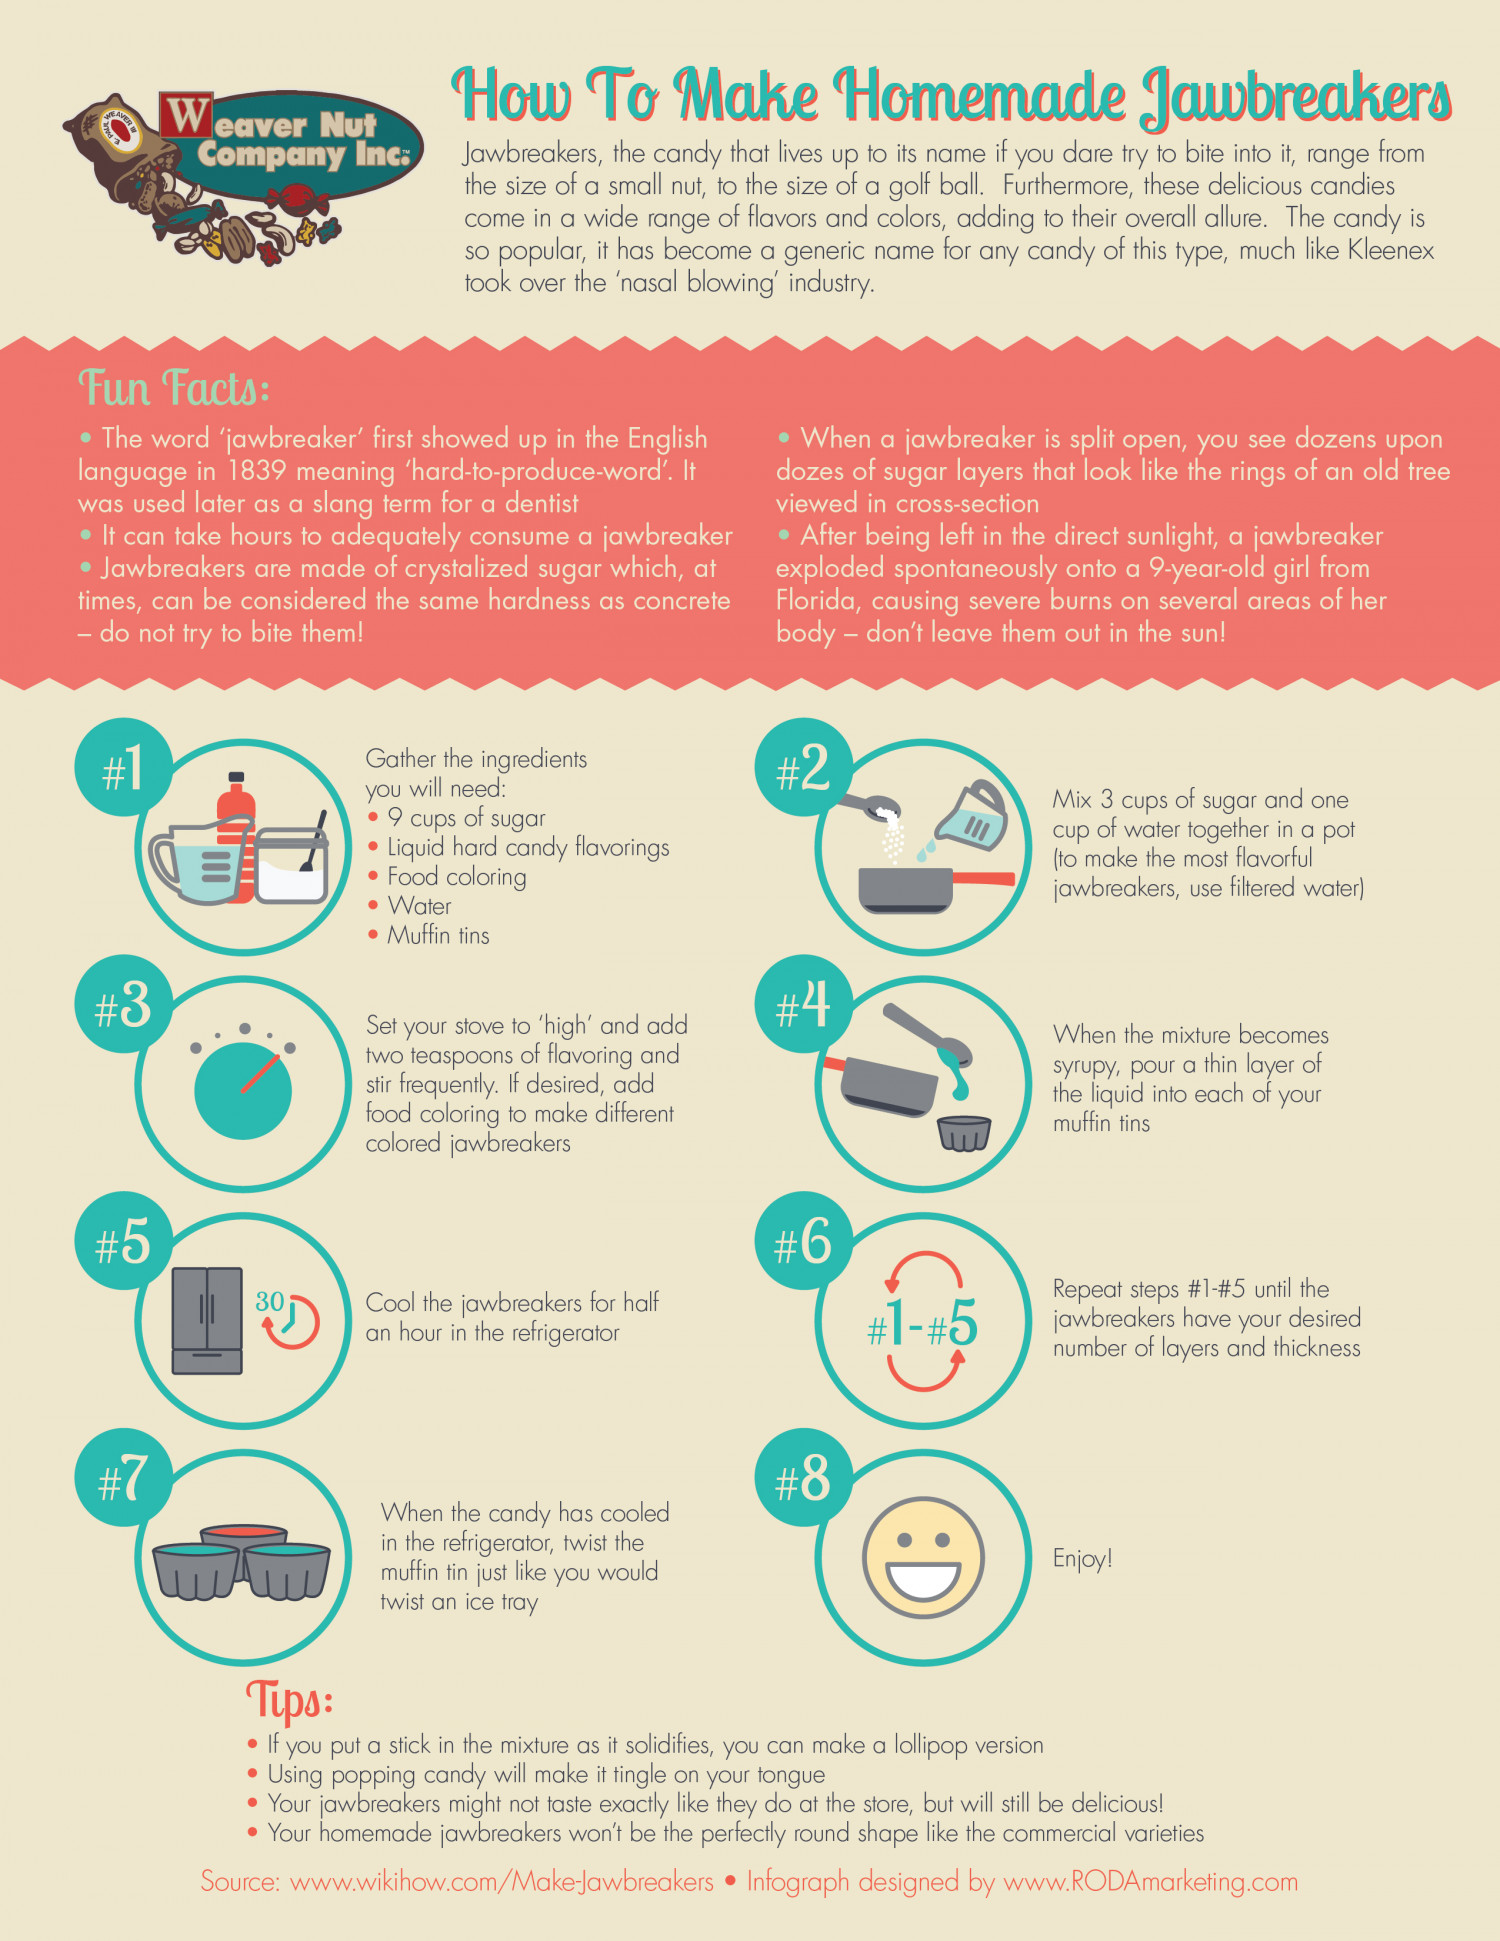 Infographic on How To Make Homemade Bulk Candy - The Jawbreakers Infographic